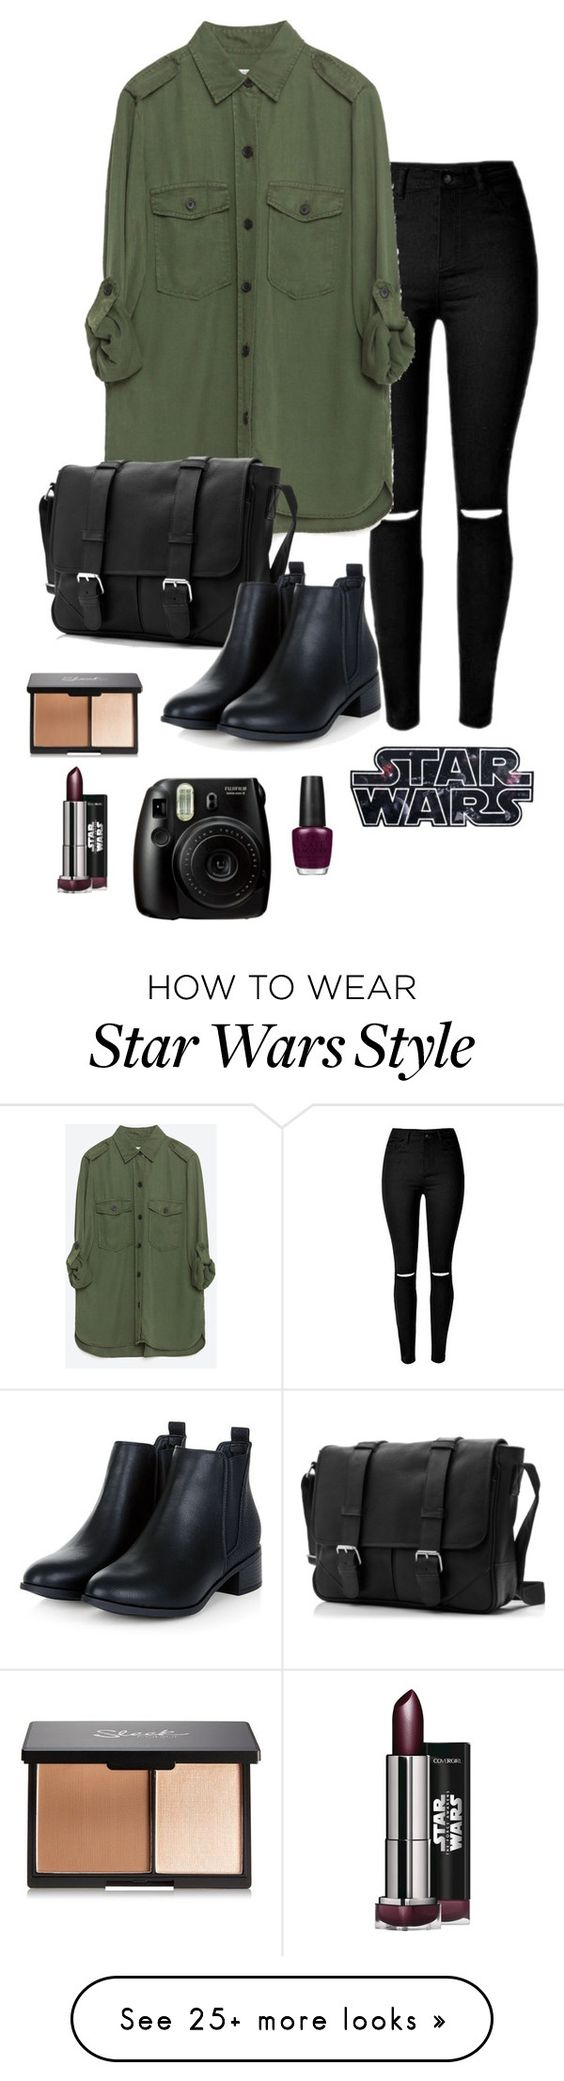 """..."" by kika-lv on Polyvore featuring Zara, OPI, women's clothing, women, female, woman, misses and juniors"